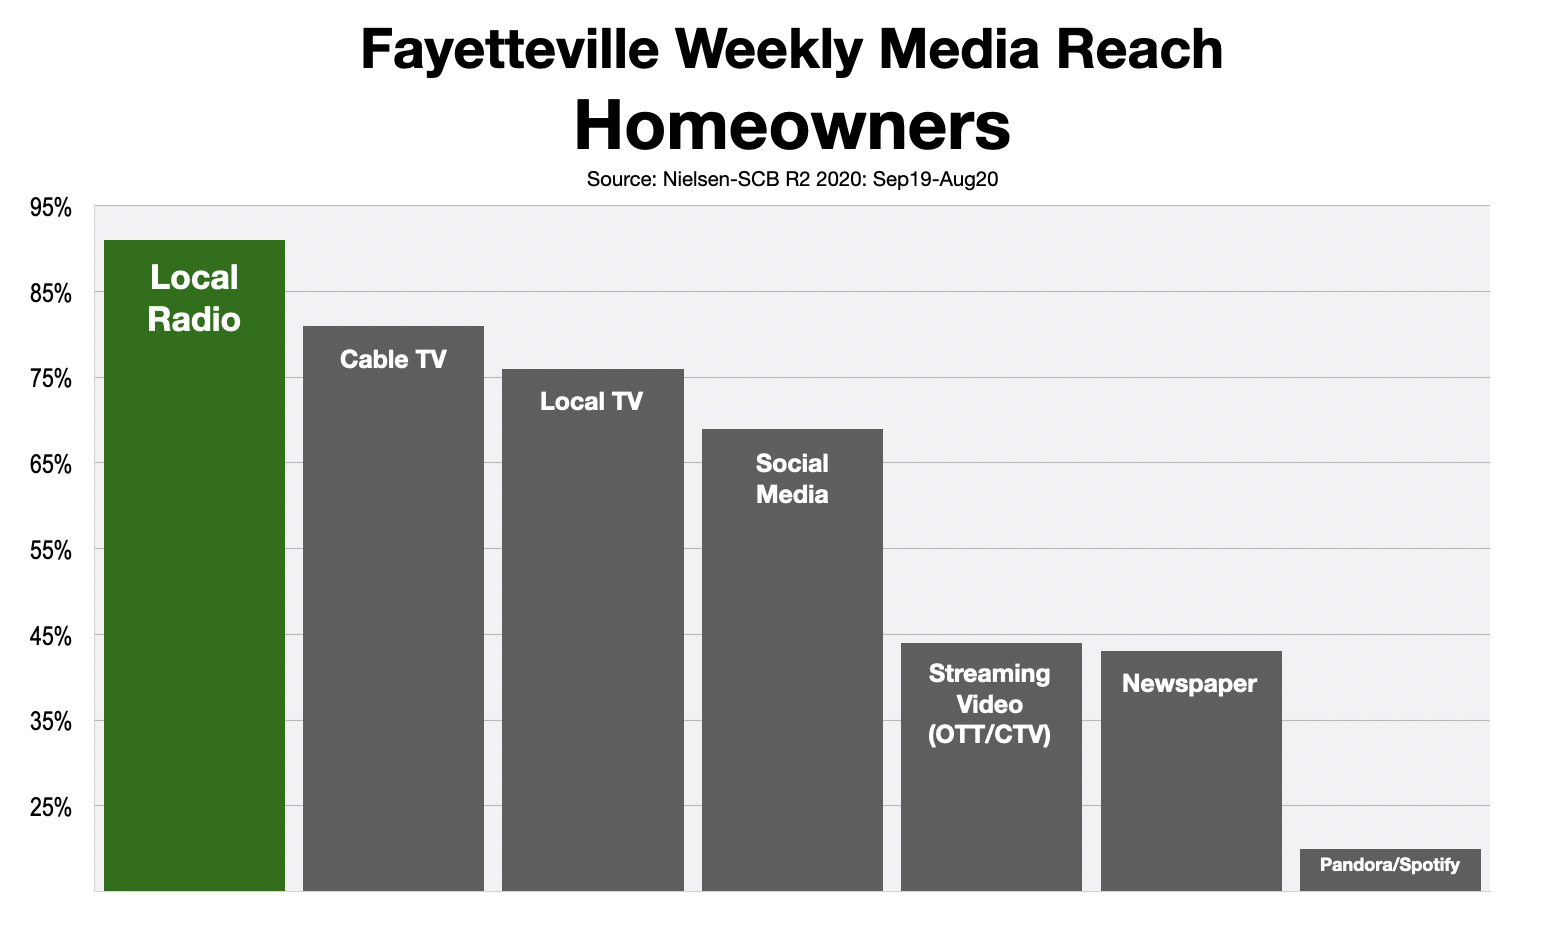 Advertising In Fayetteville Homeowners 2021